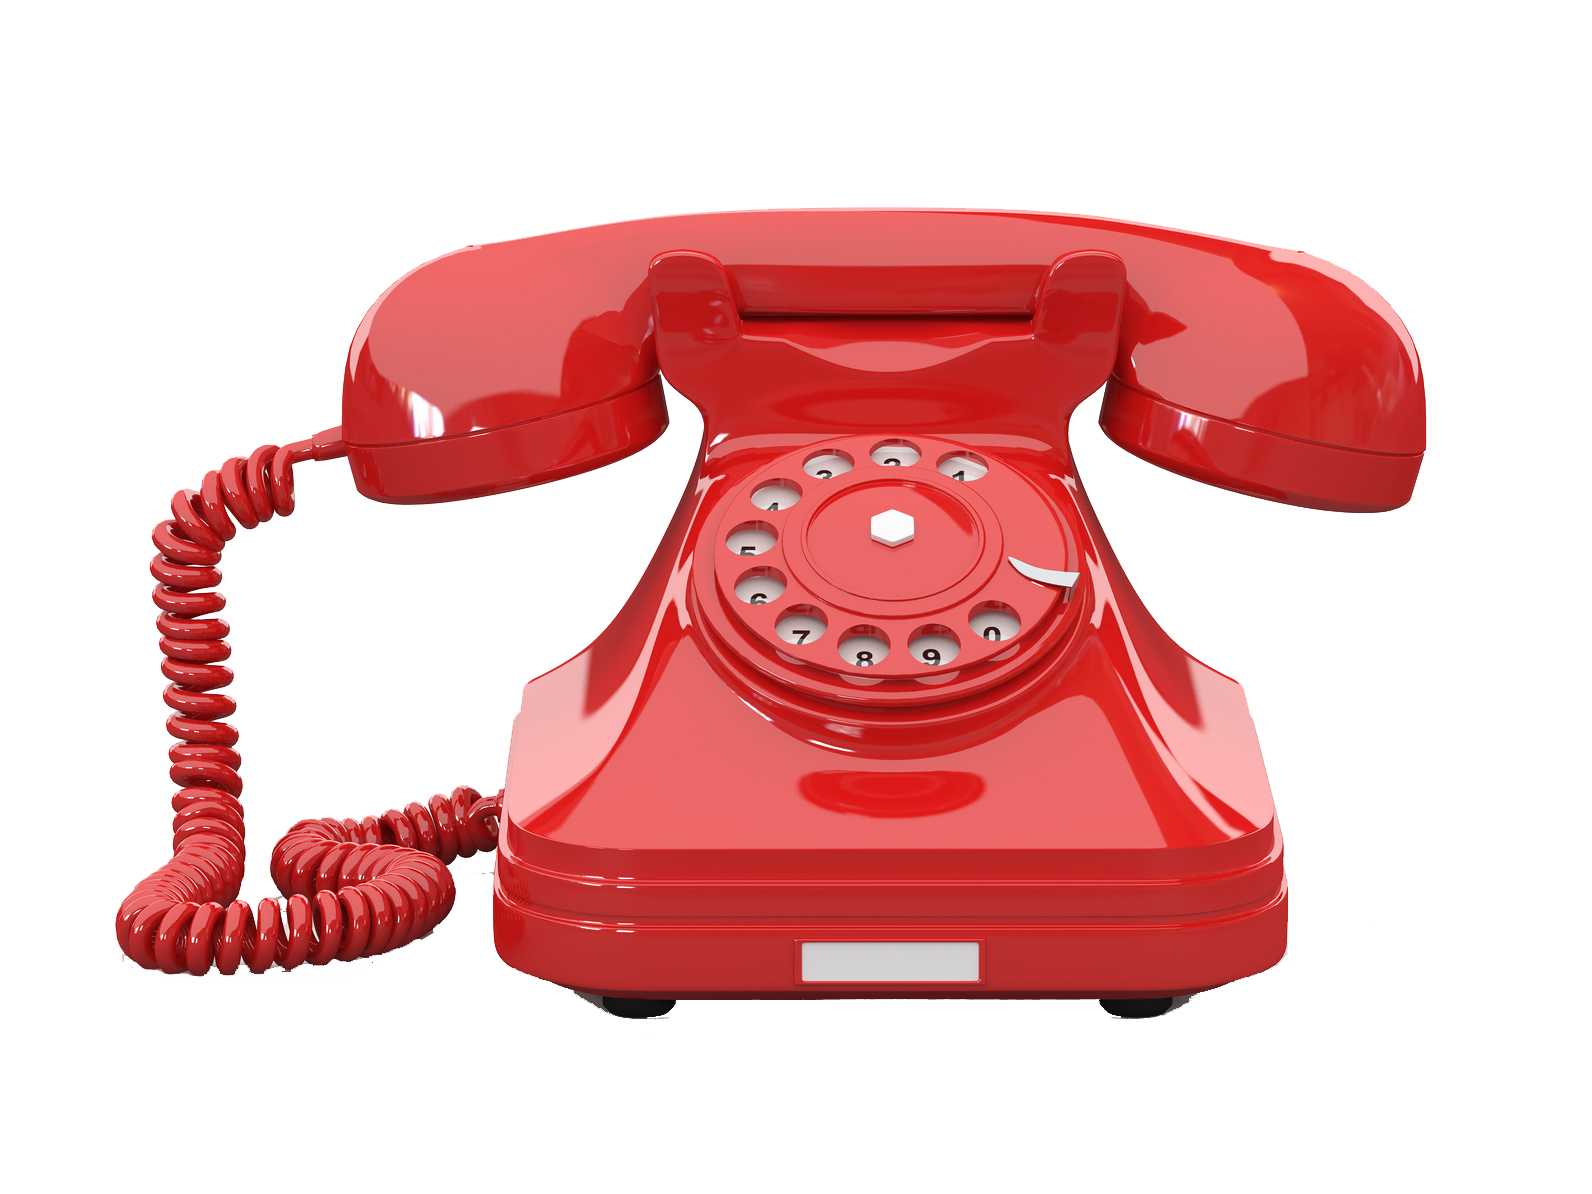 Telephone PNG HD Images - 136879